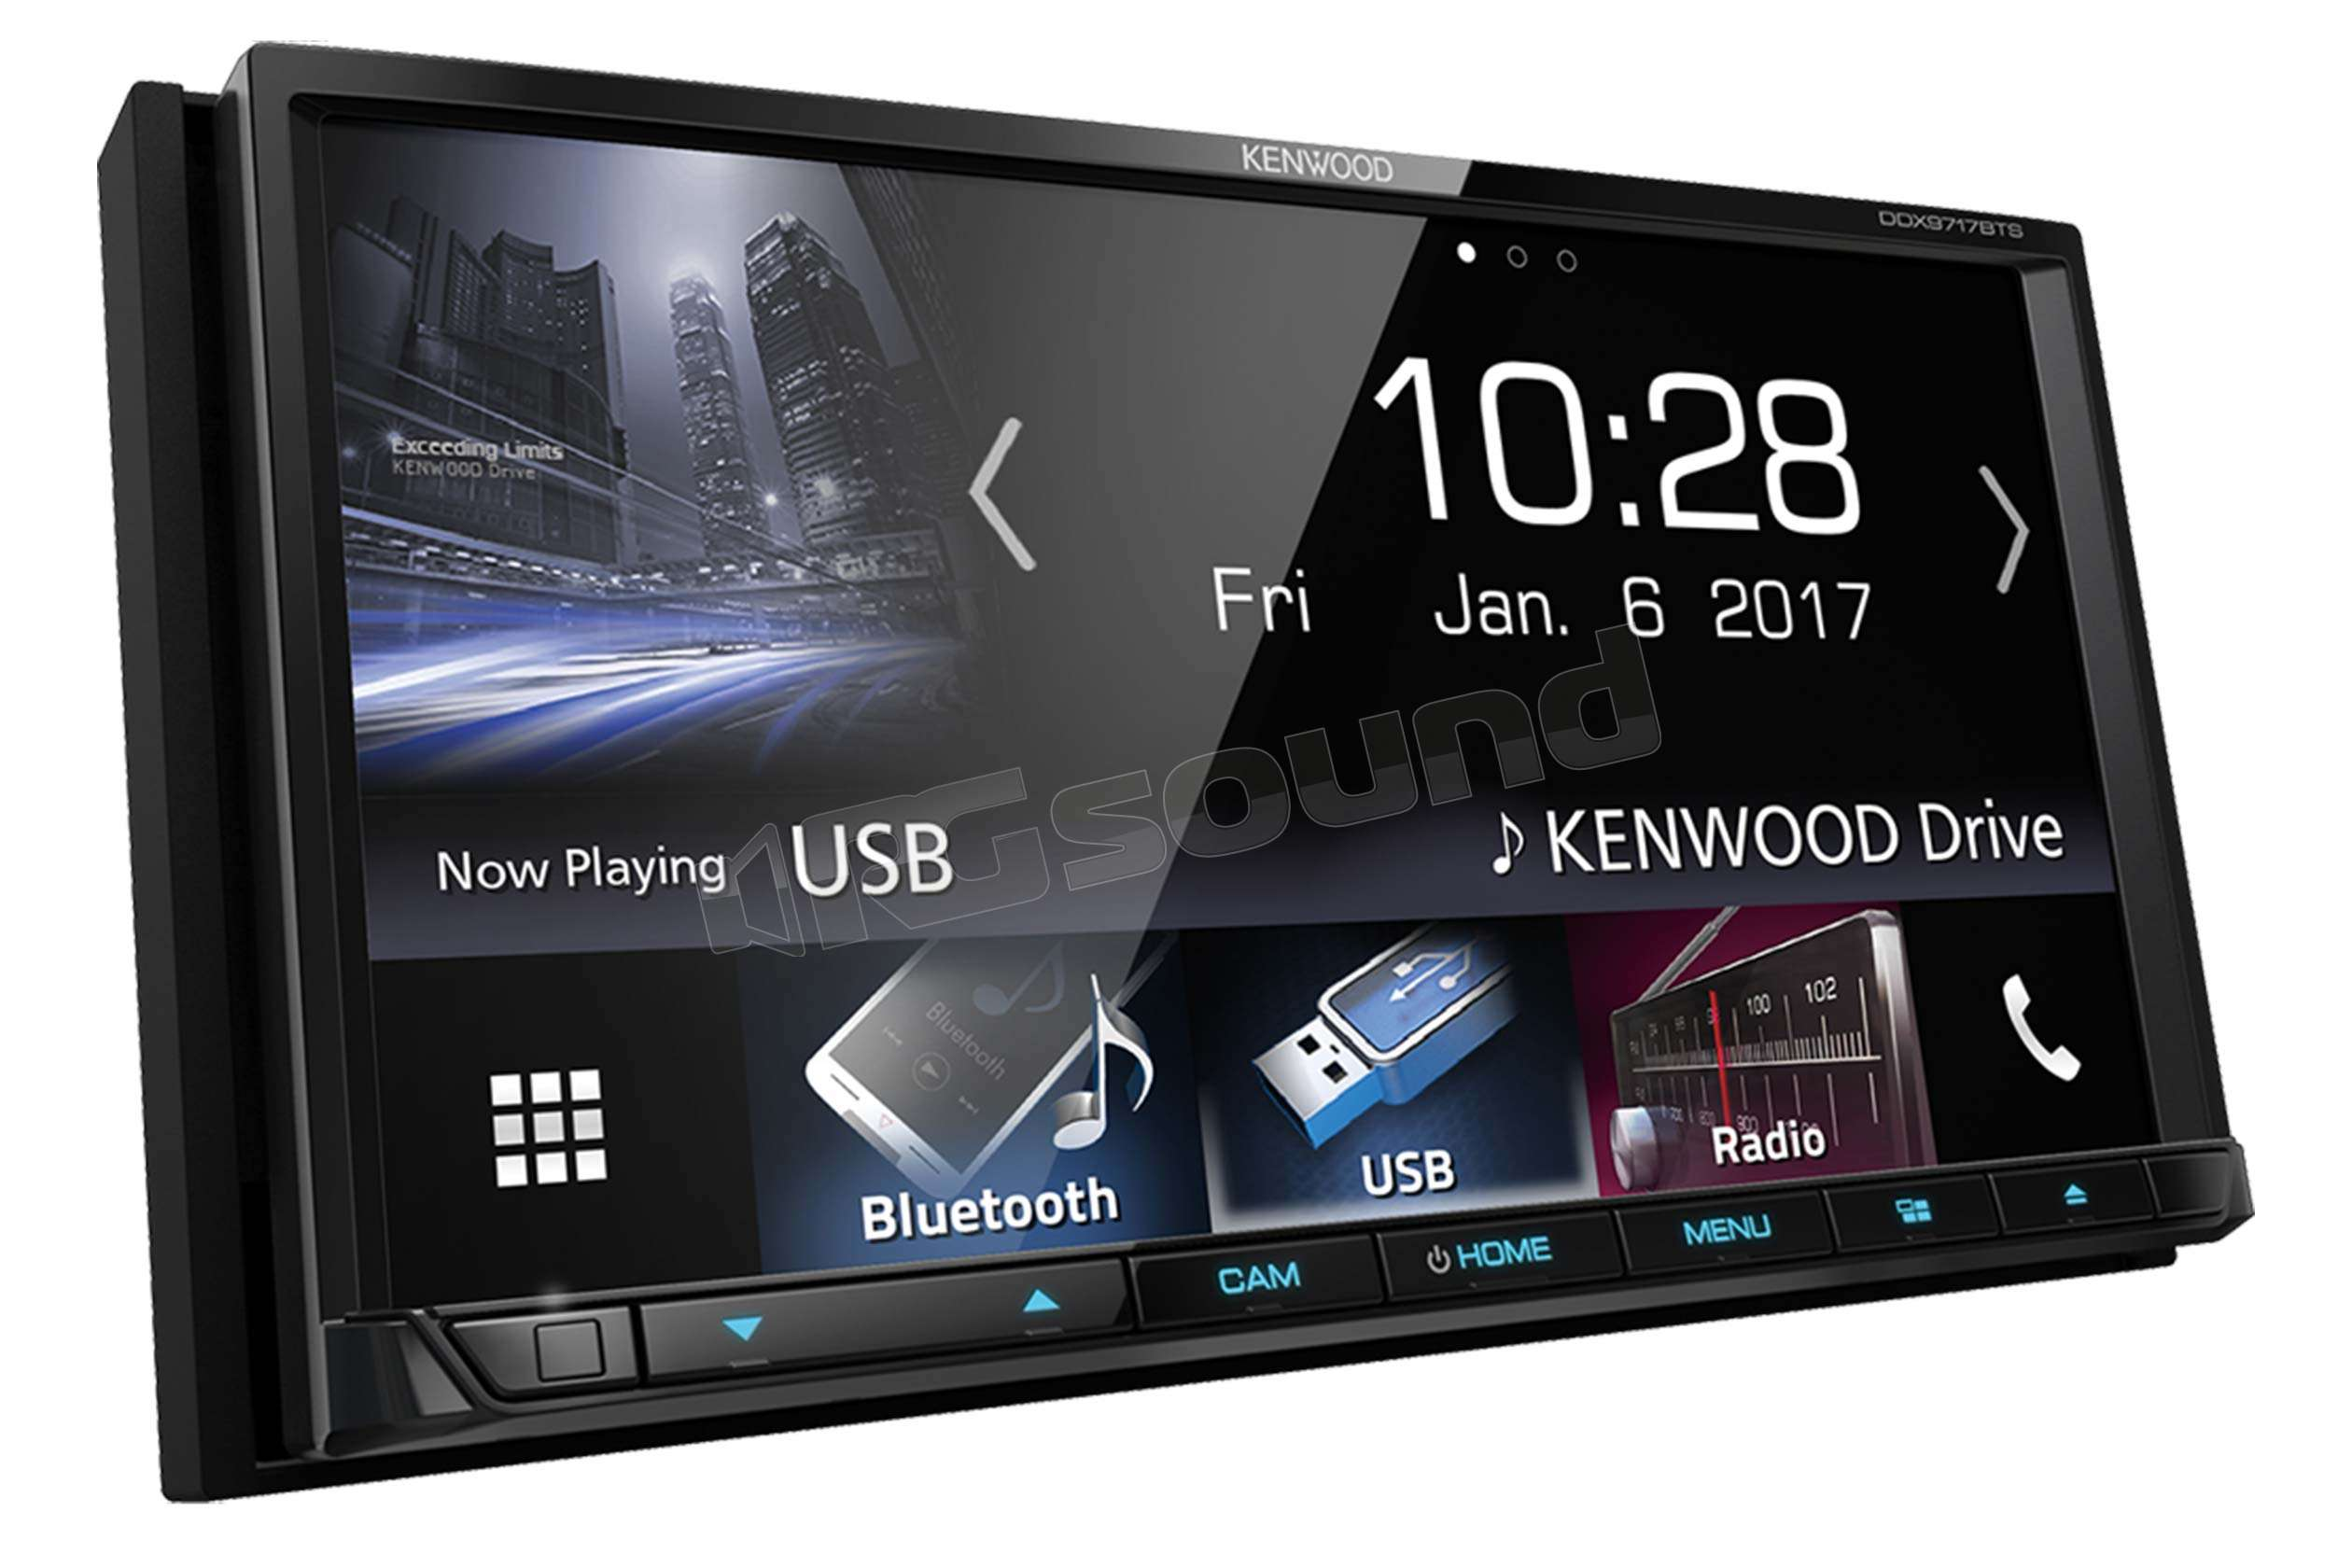 kenwood ddx9717bts android auto e apple car play monitor. Black Bedroom Furniture Sets. Home Design Ideas